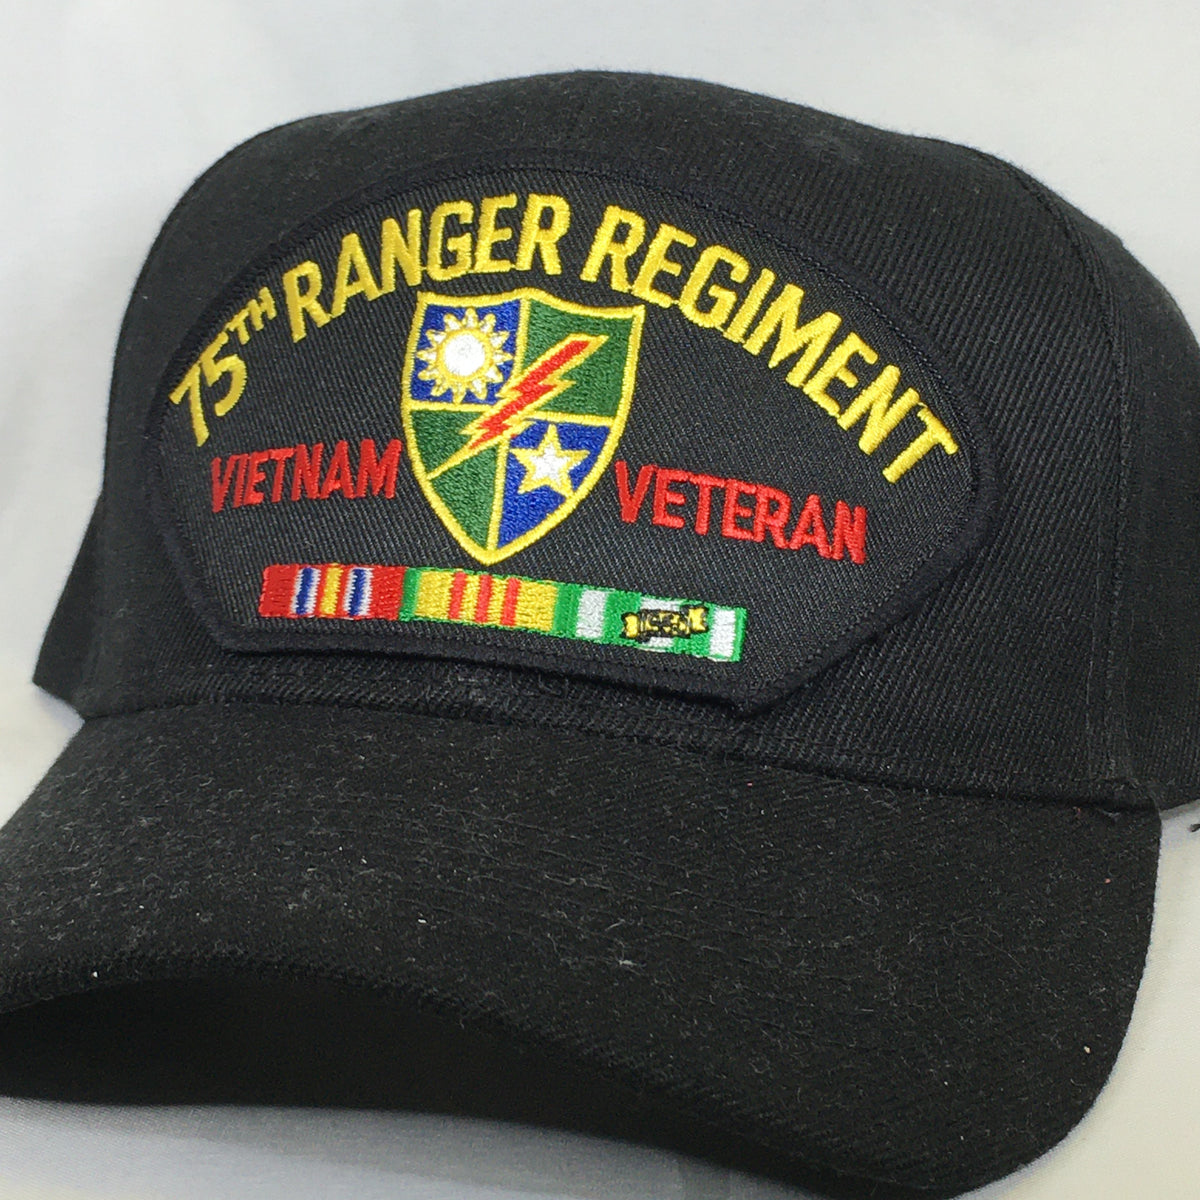 75th Ranger Regiment Vietnam Veteran Cap